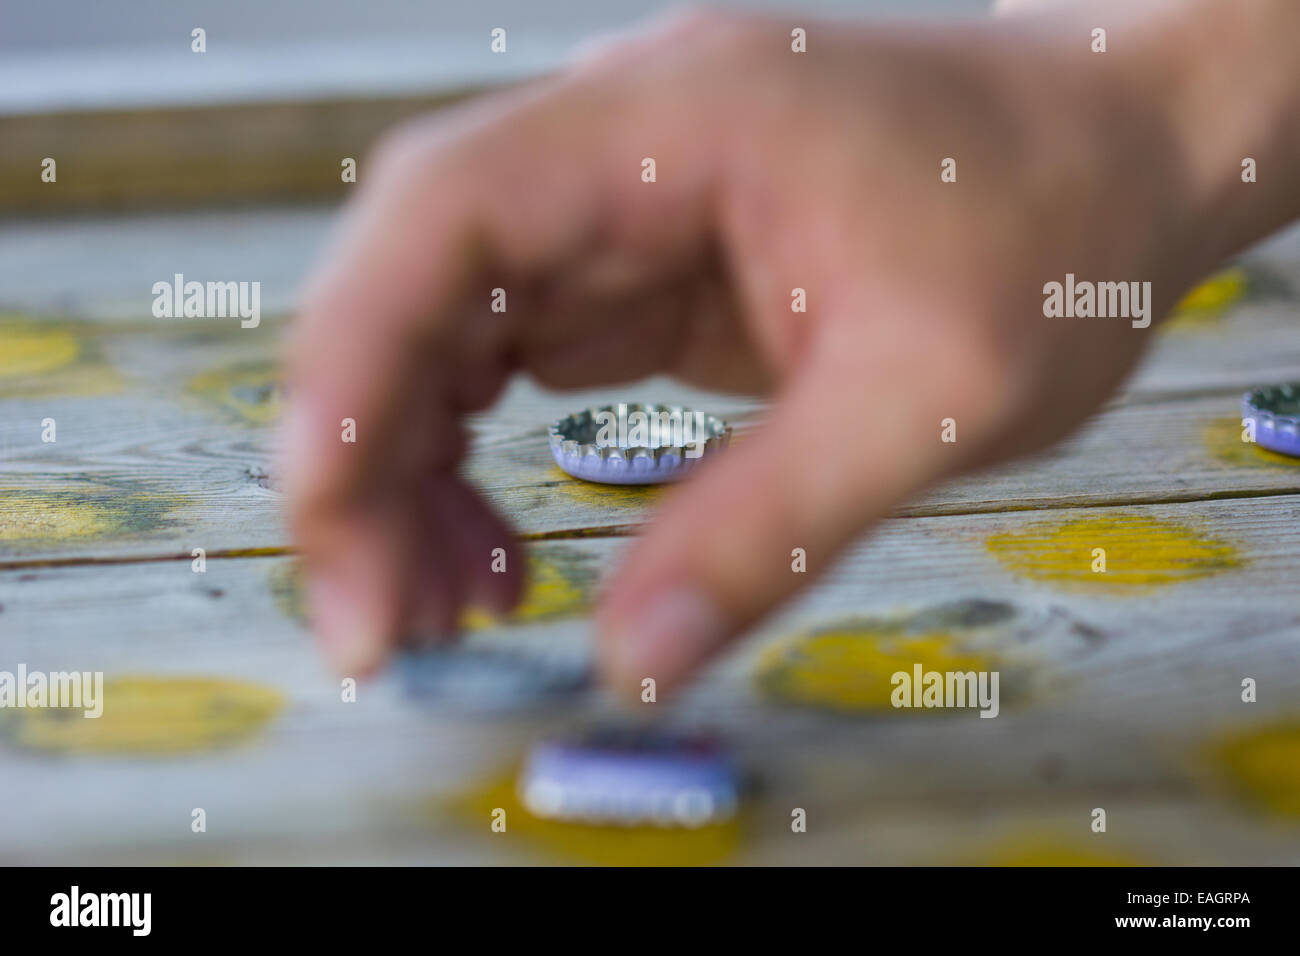 pointing draughts or checkers board game Stock Photo